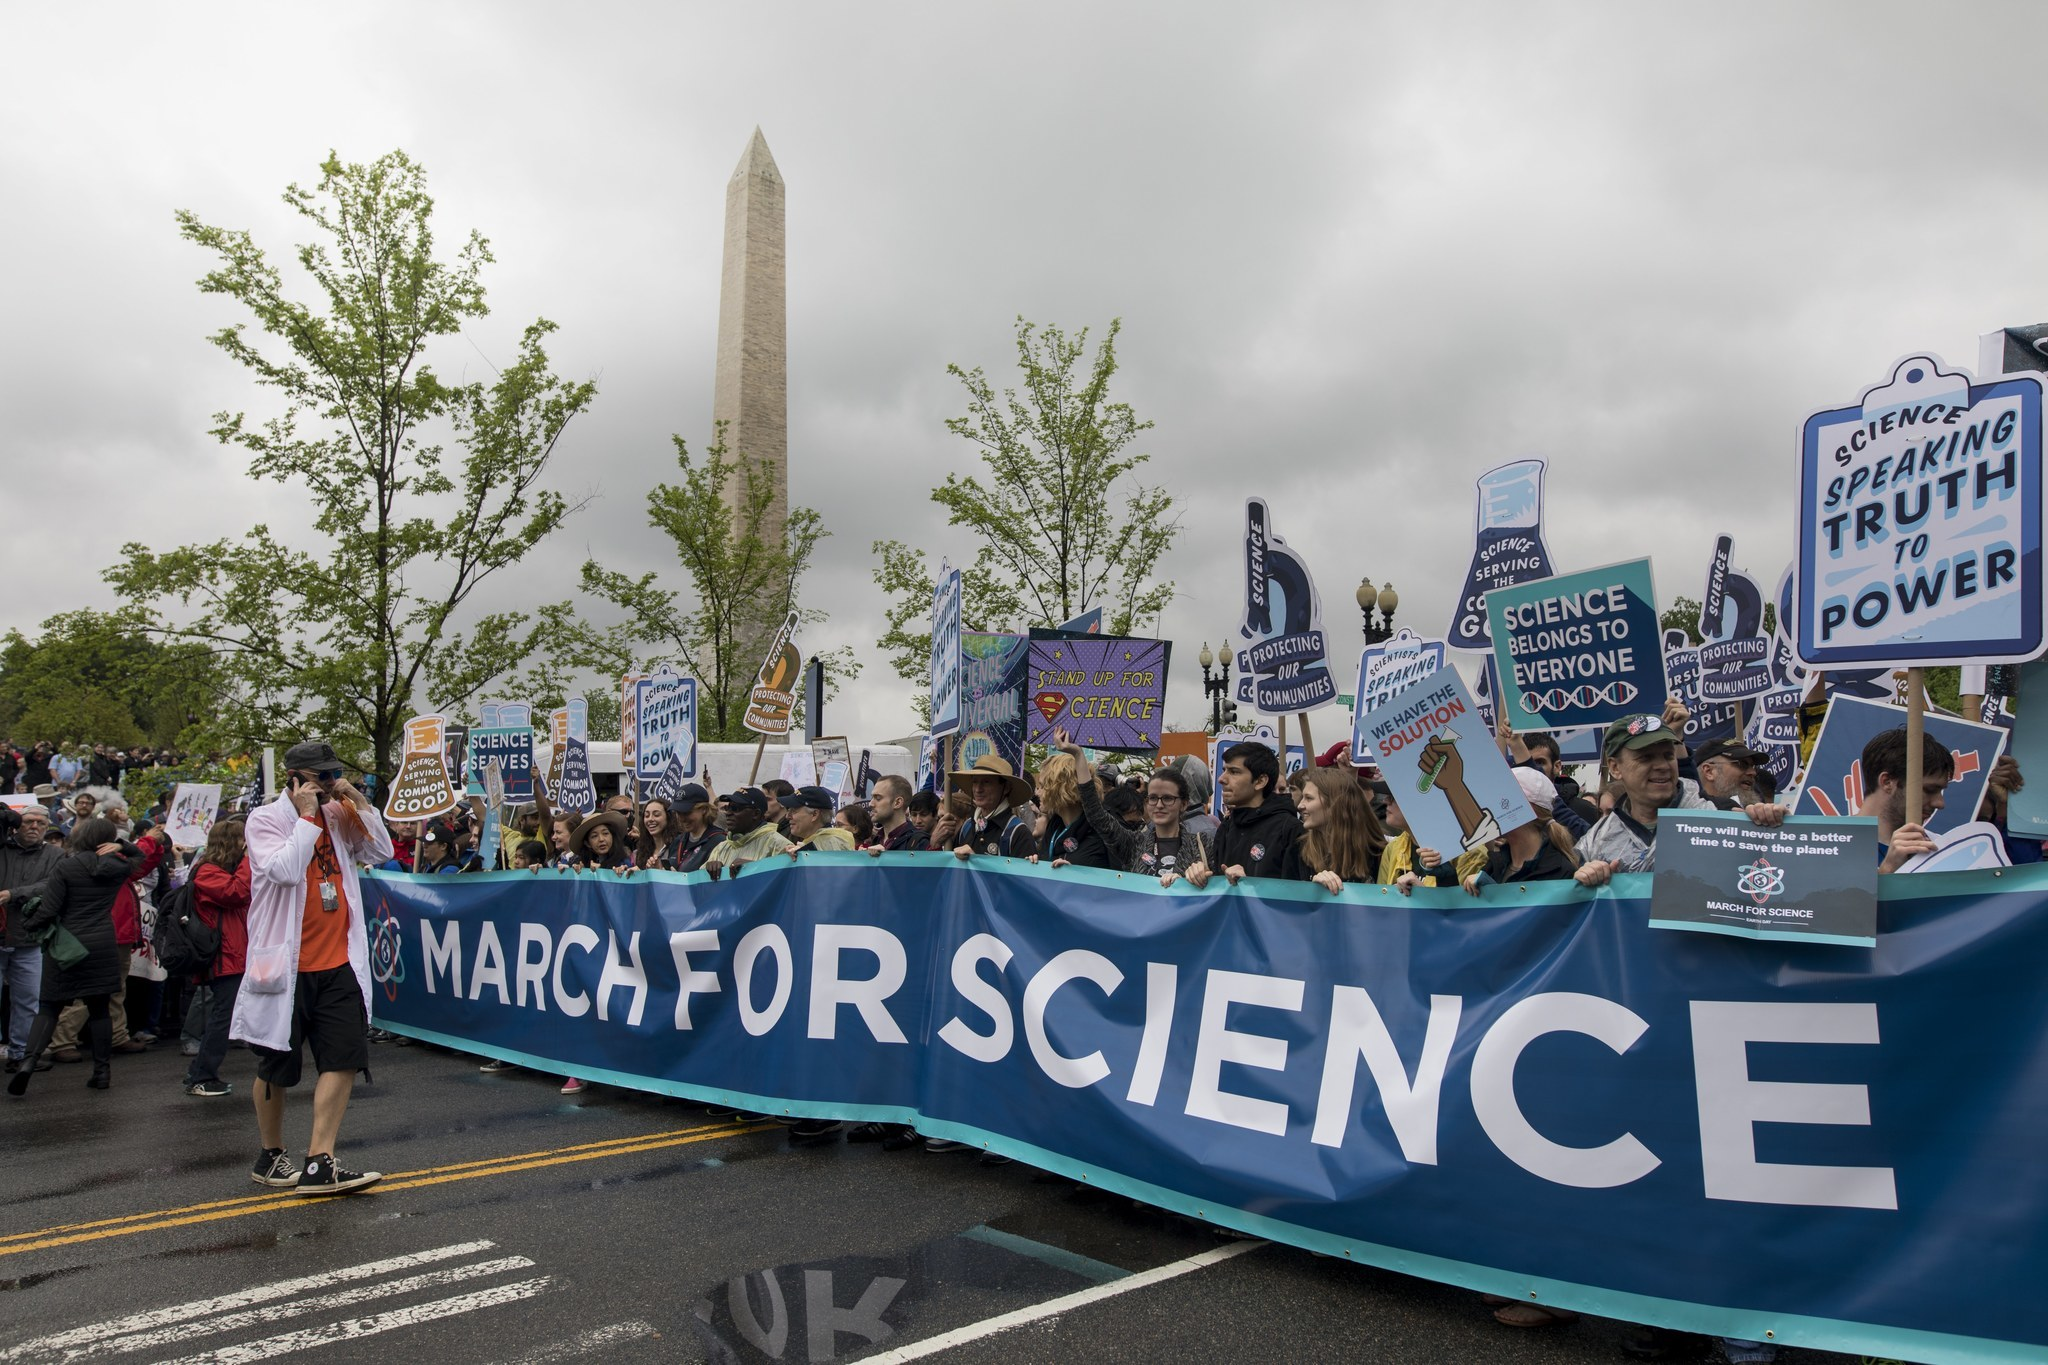 March for Science demonstration in Washington DC